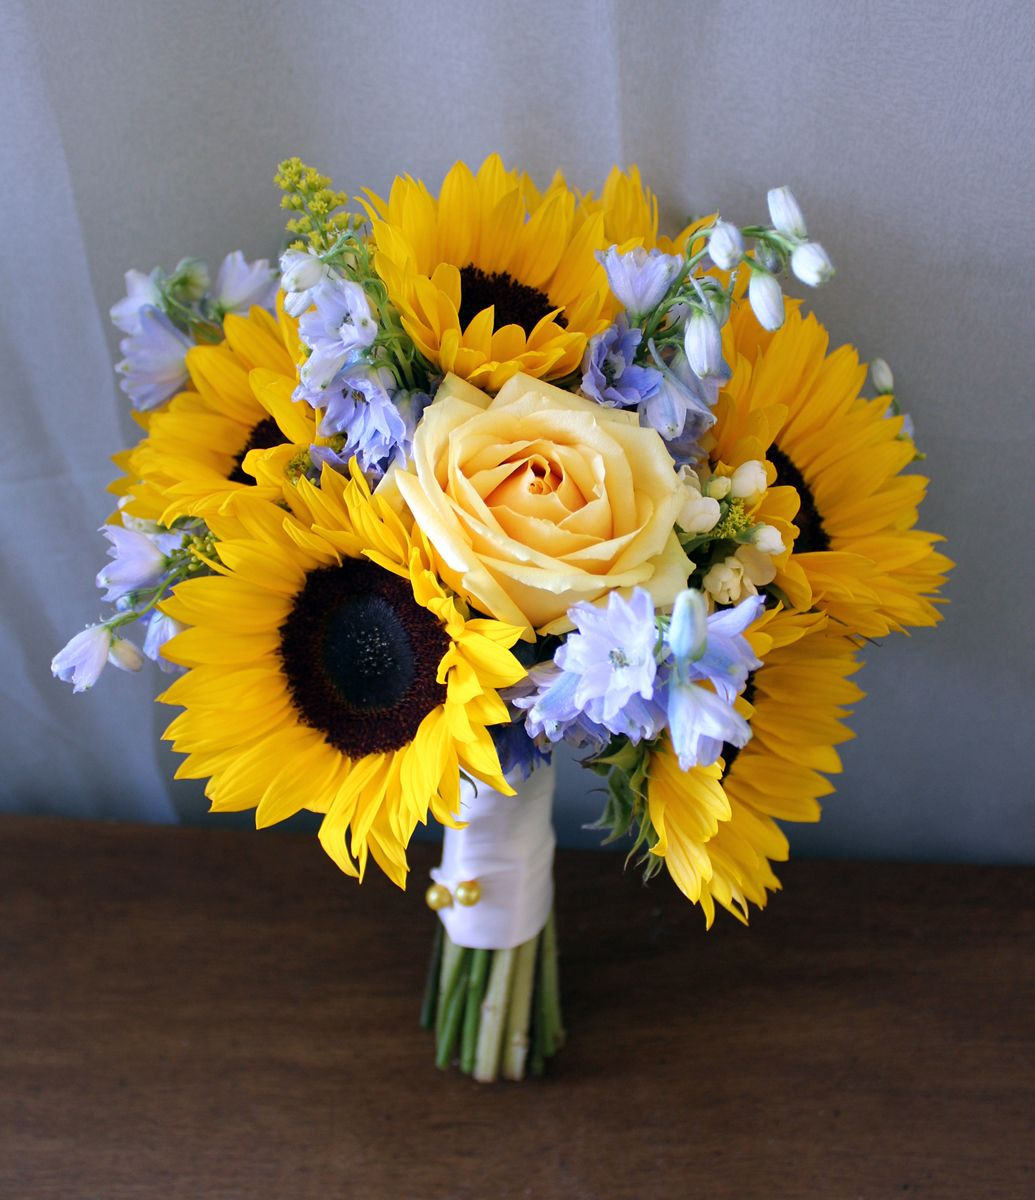 Bridal Bouquet of sunflowers, roses and delphinium